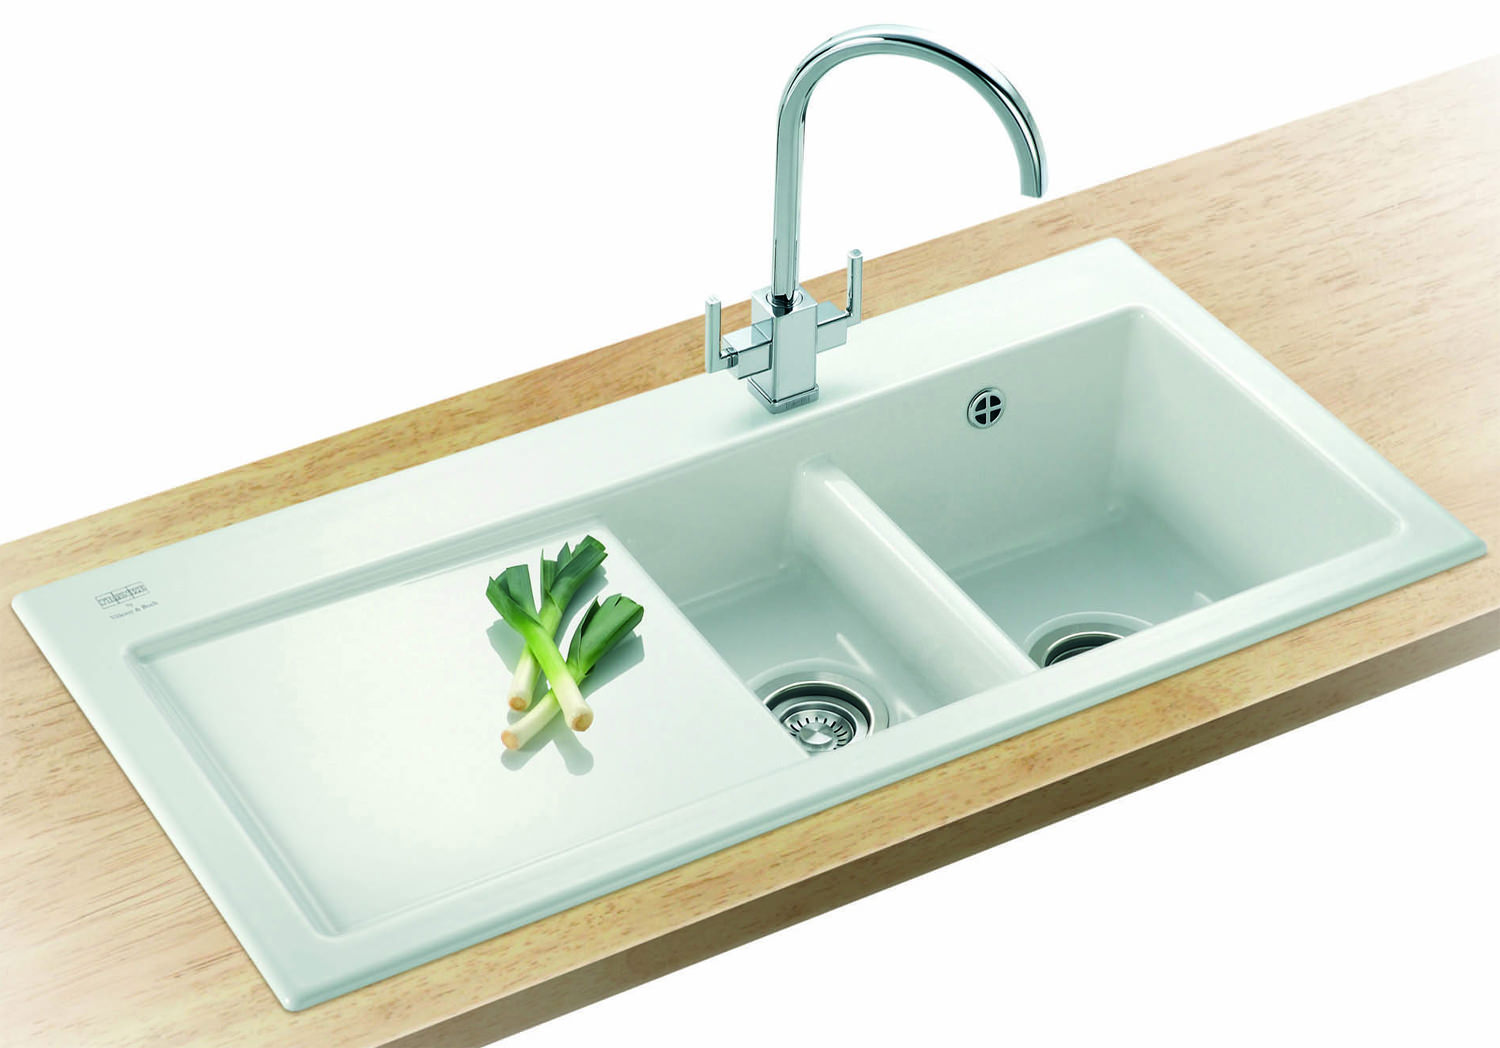 Image 3 of Franke Mythos MTK 651 Ceramic 1.5 Bowl Kitchen Inset Sink